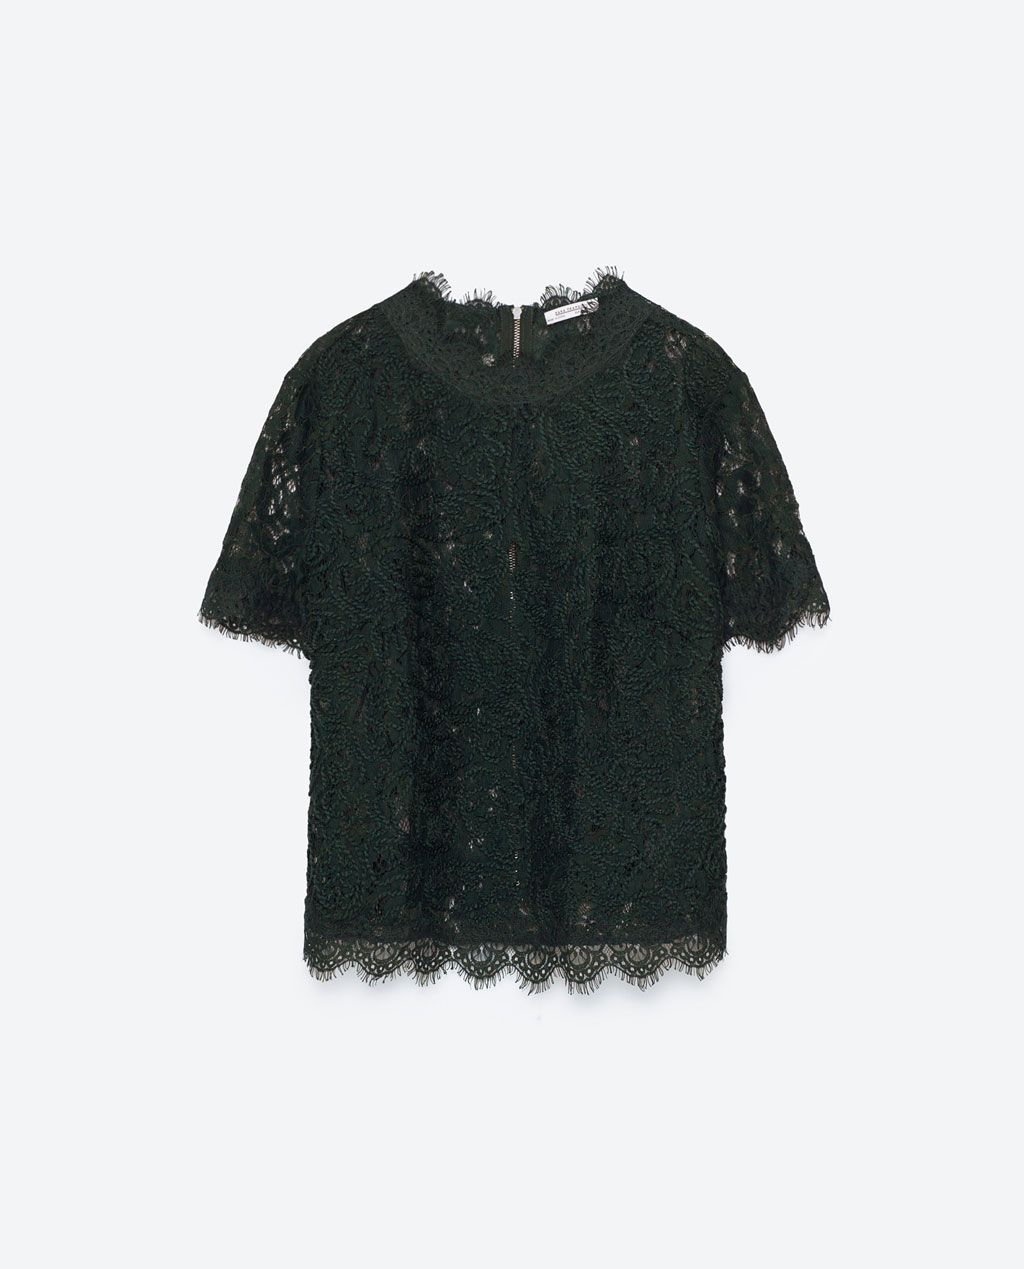 a44424e6 Image 8 of EMBROIDERED LACE T-SHIRT from Zara | zara 4ever in 2019 ...